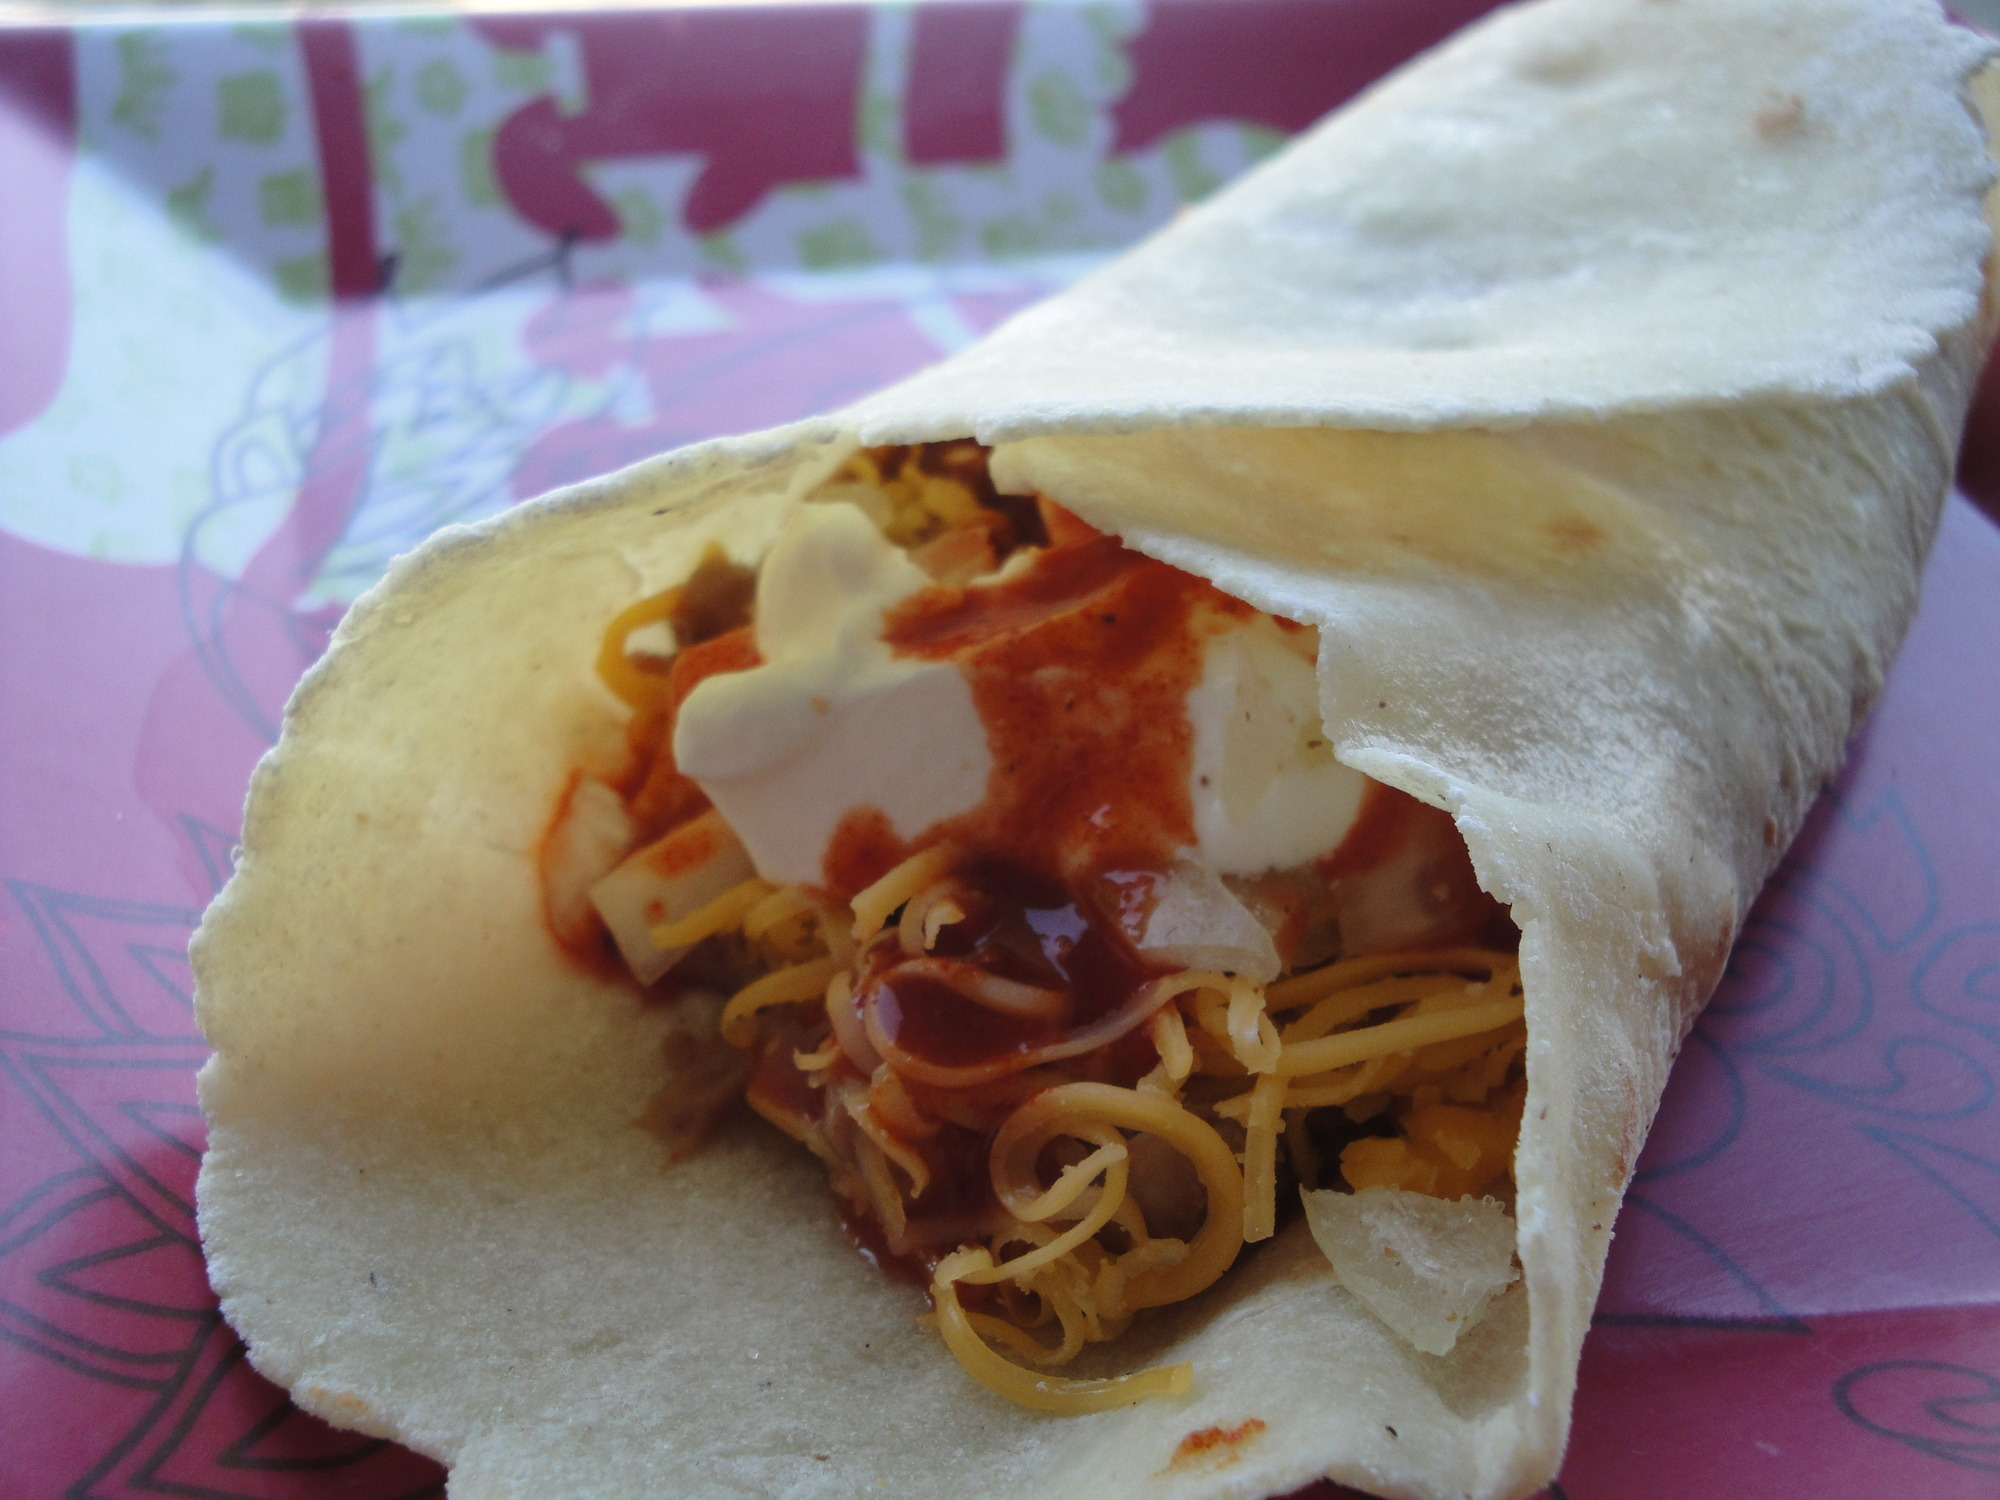 Frugal Gluten-Free Living: Flour Tortillas that Taste Great!